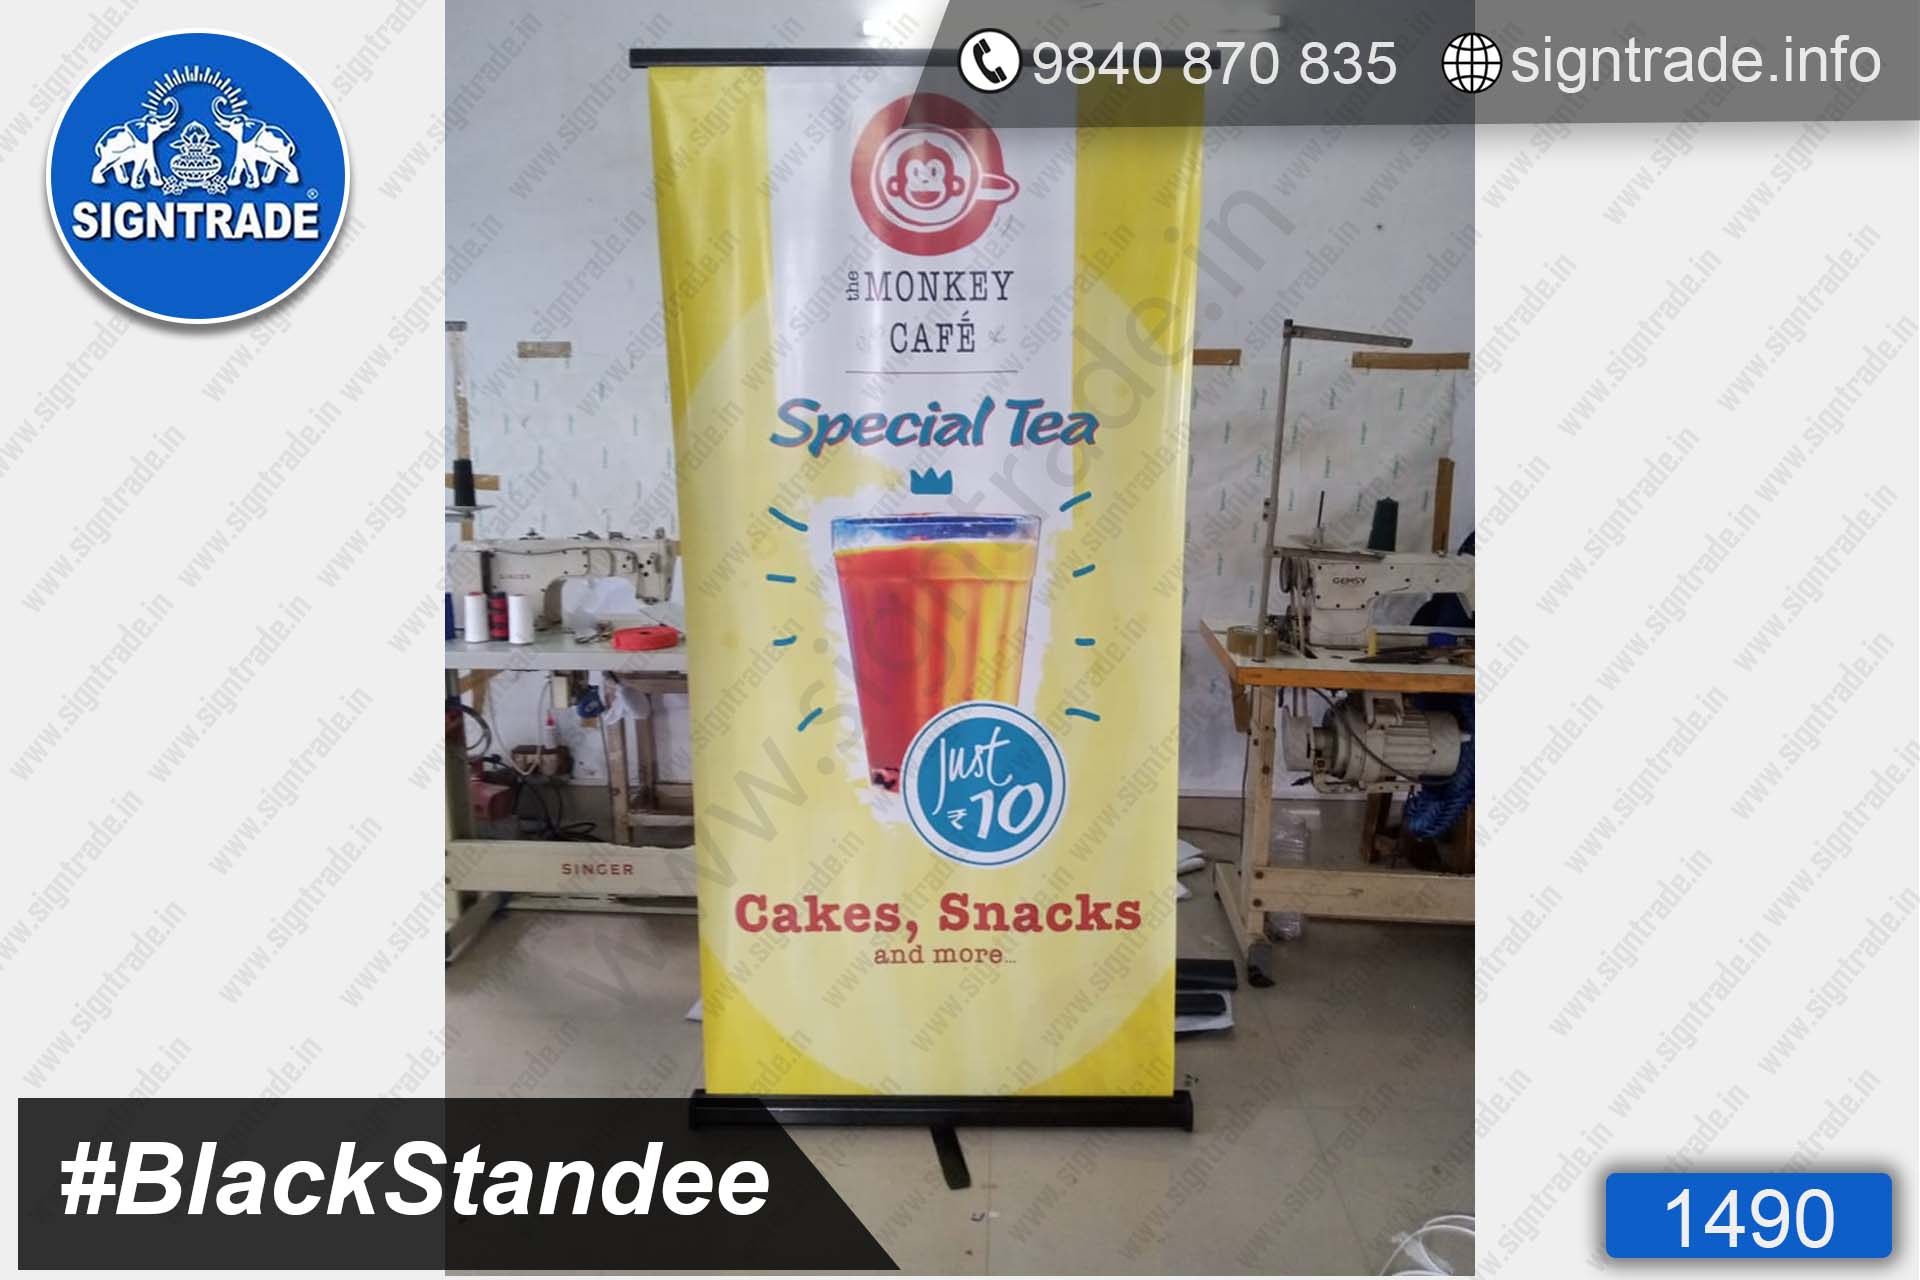 1490, Monkey Cafe Special Tea, Chennai - SIGNTRADE - Digital Printing Services - Black Roll Up Banner Stand Manufacturer in Chennai